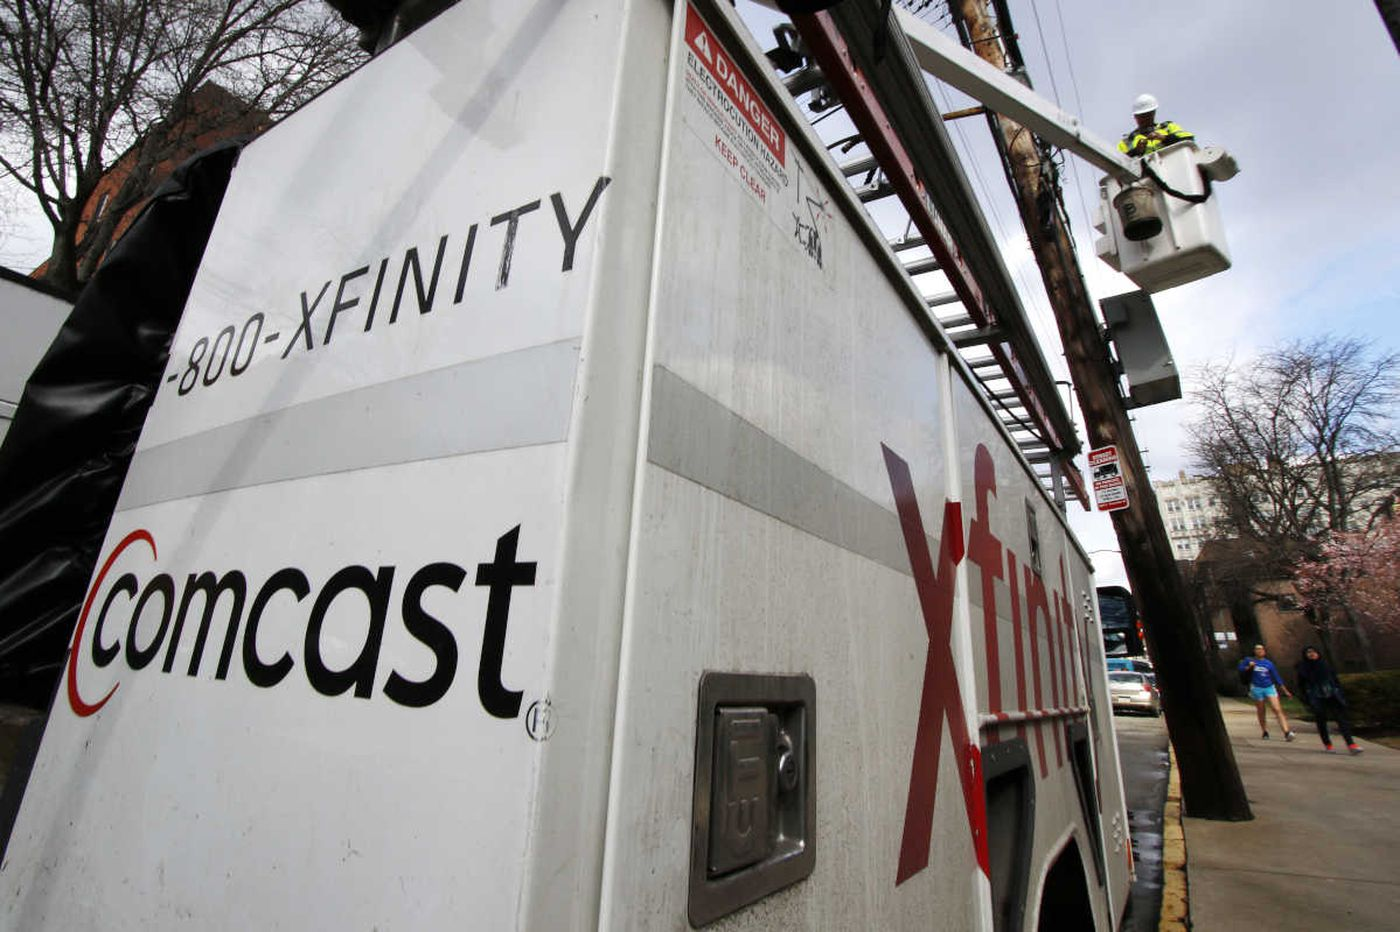 Comcast contractor to pay $7 5 million to settle lawsuit over unpaid